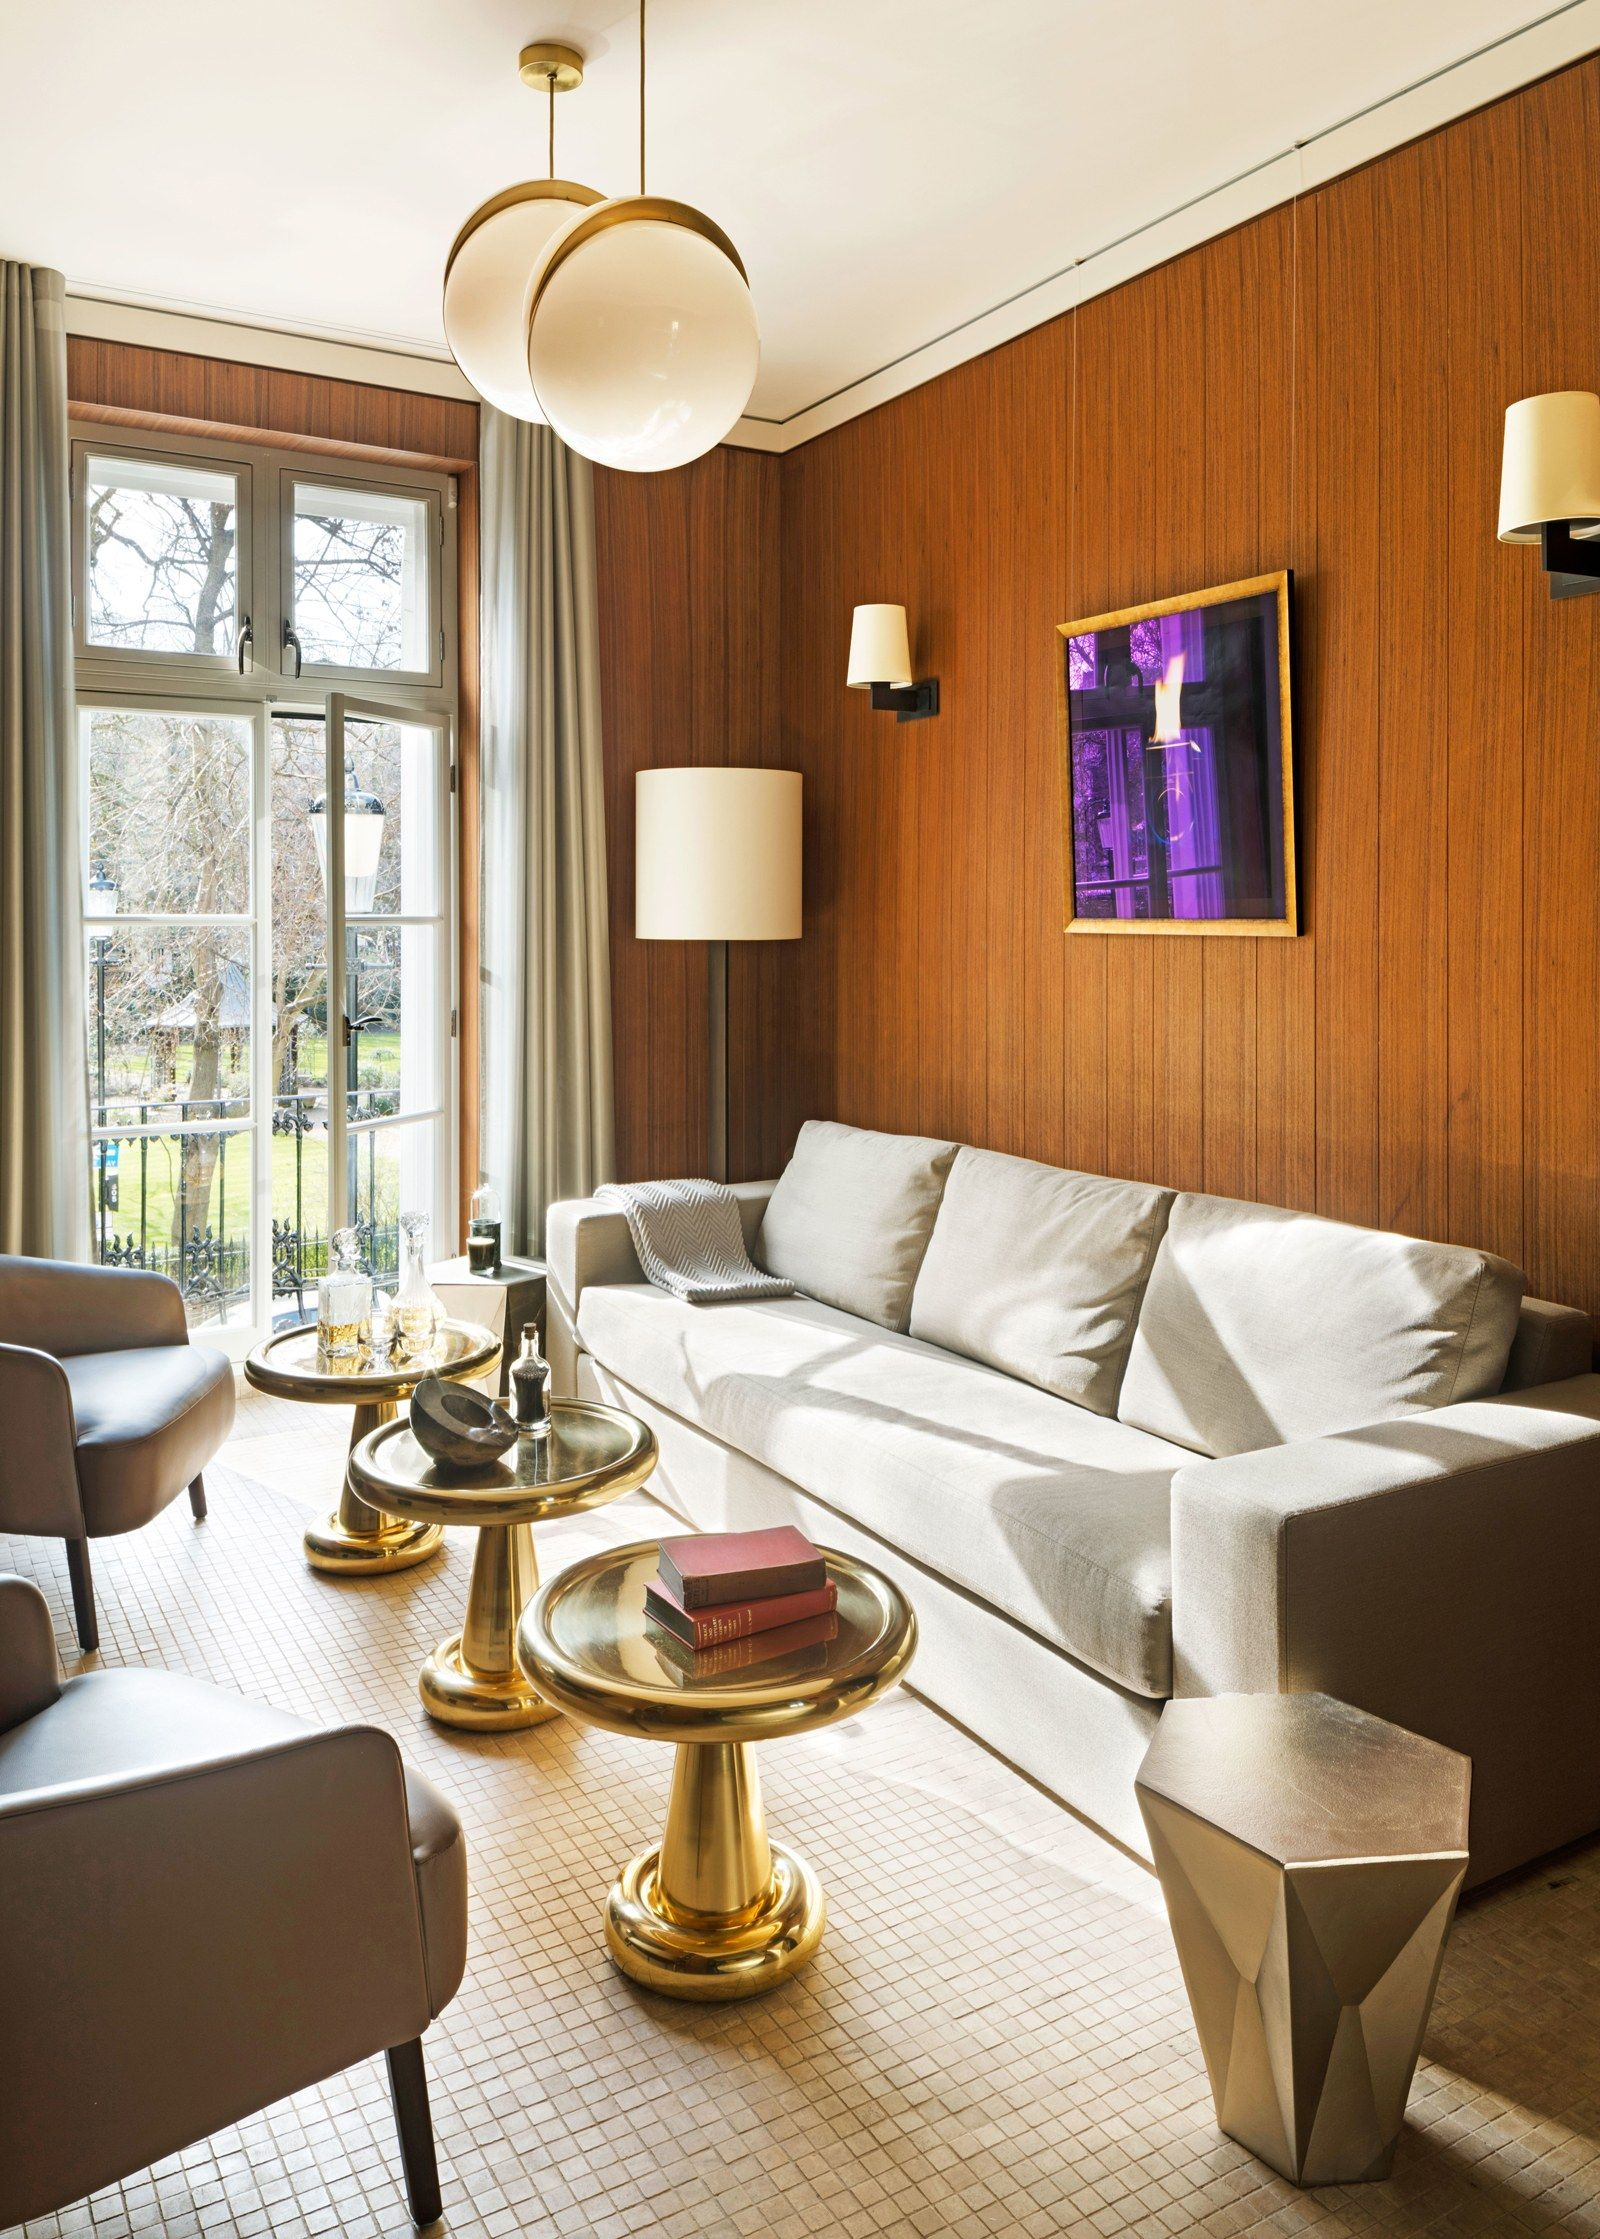 Cozy Living Room Ideas For Small Spaces: A Sleek Yet Cozy Small Space In London